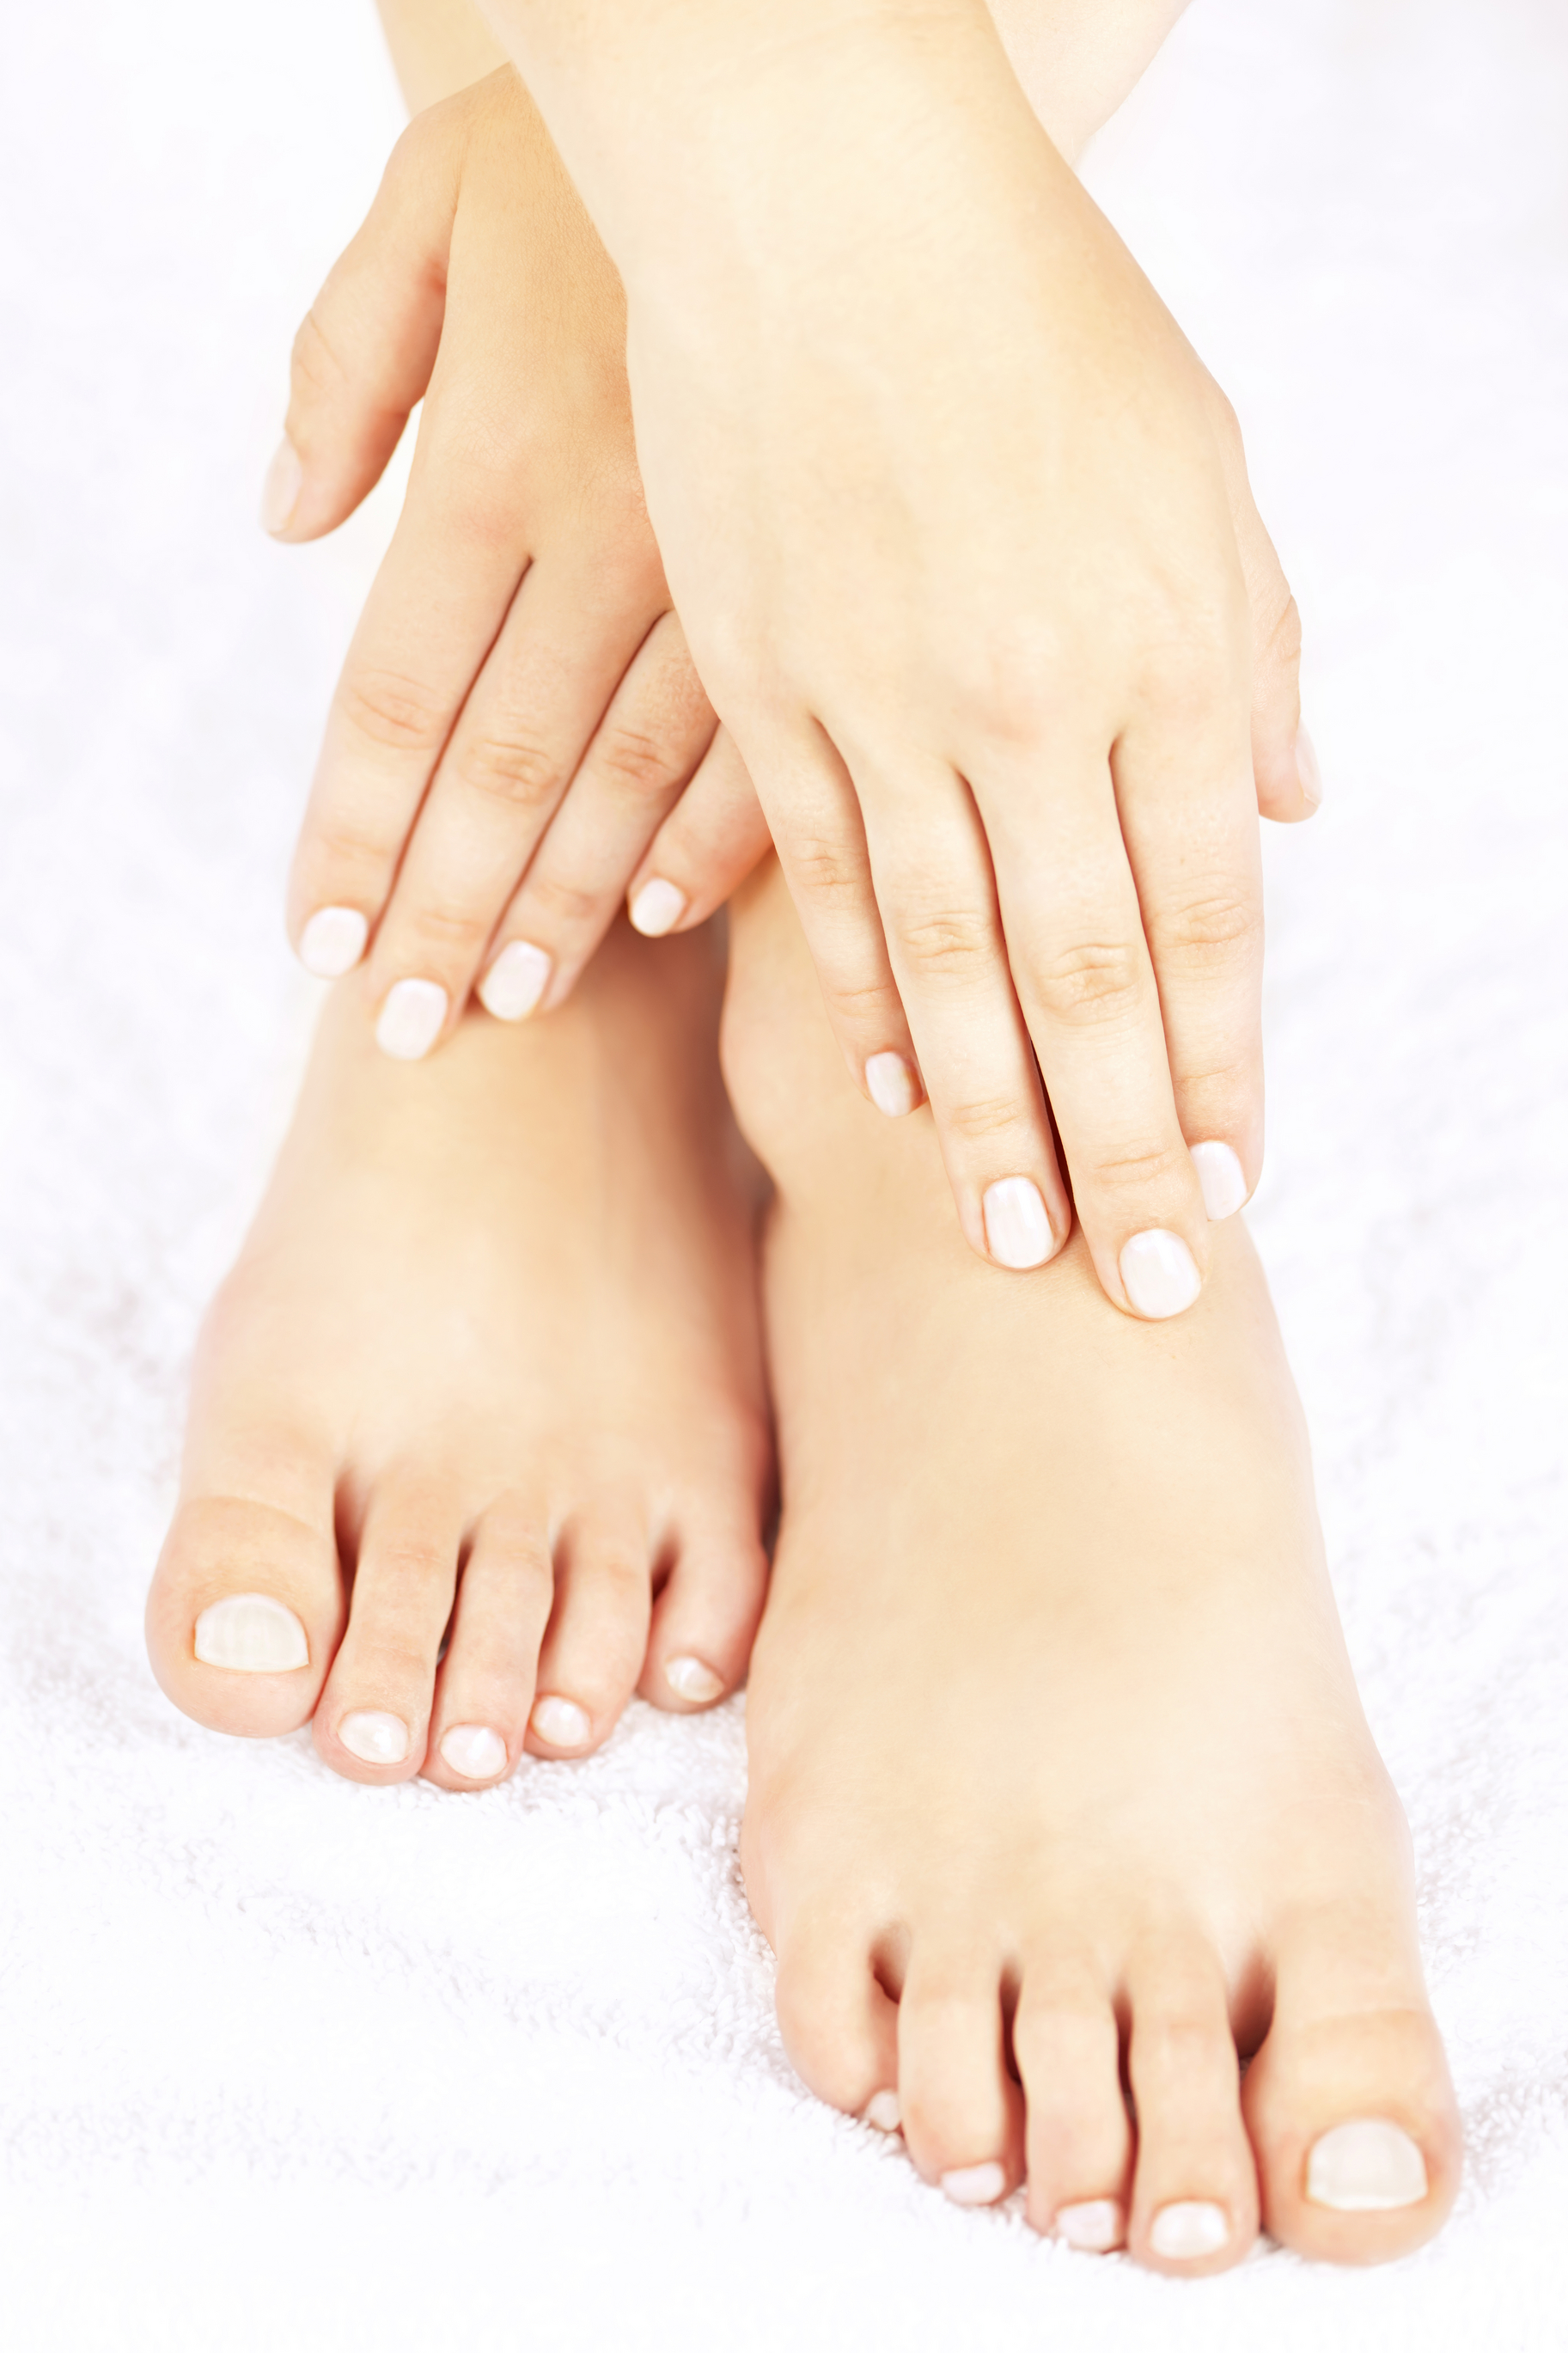 Foot care for Diabetics – The Frightening Statistics